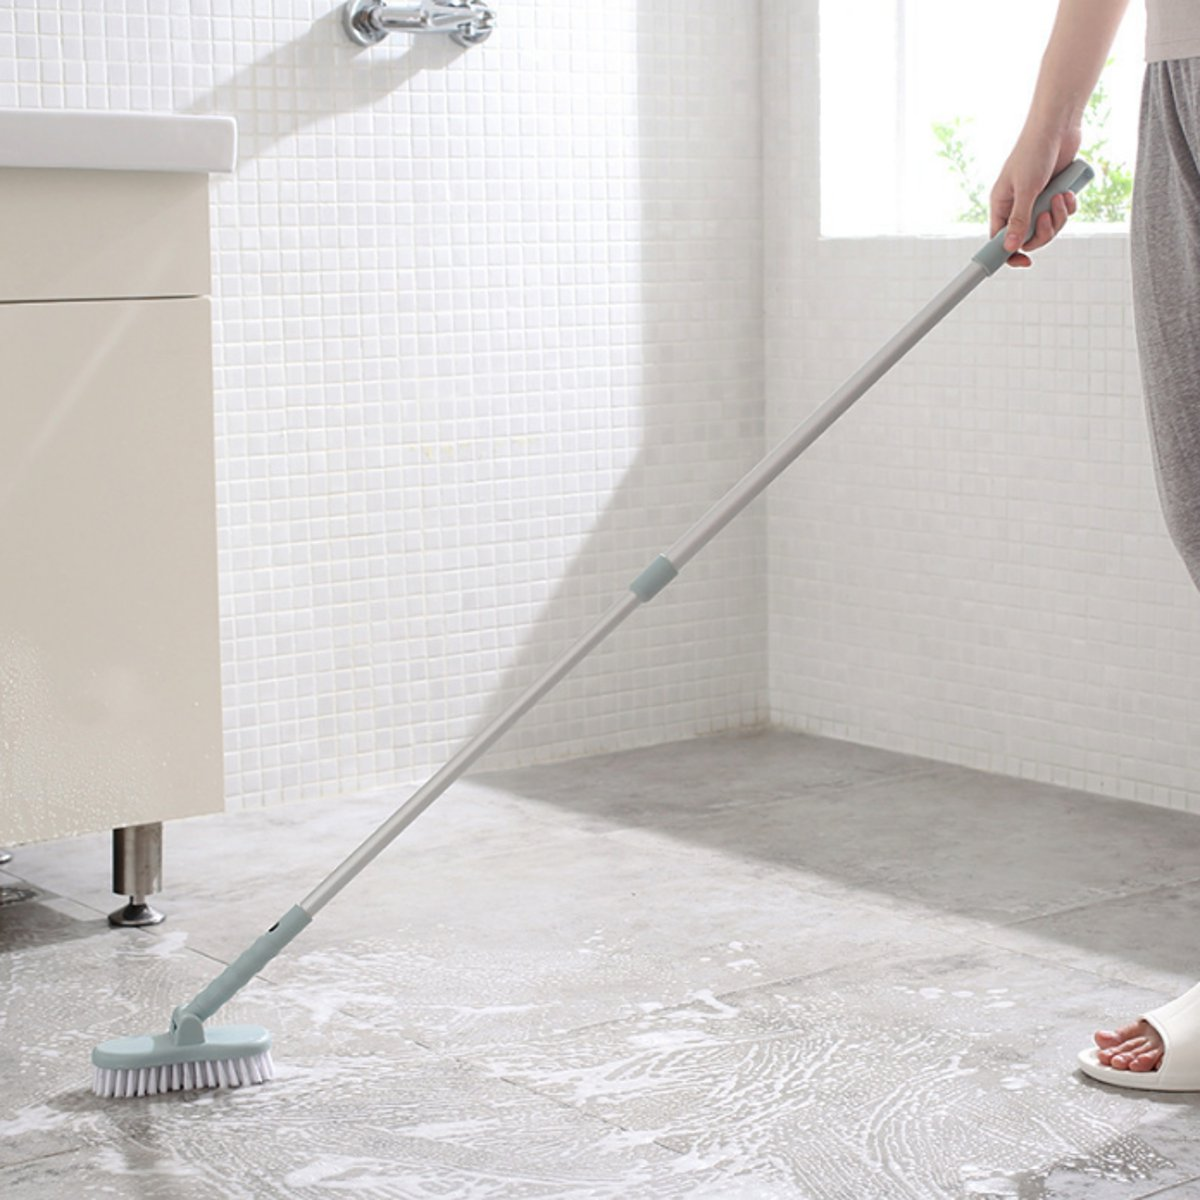 Multifunction Retractable Bathroom Cleaning Brush Wall